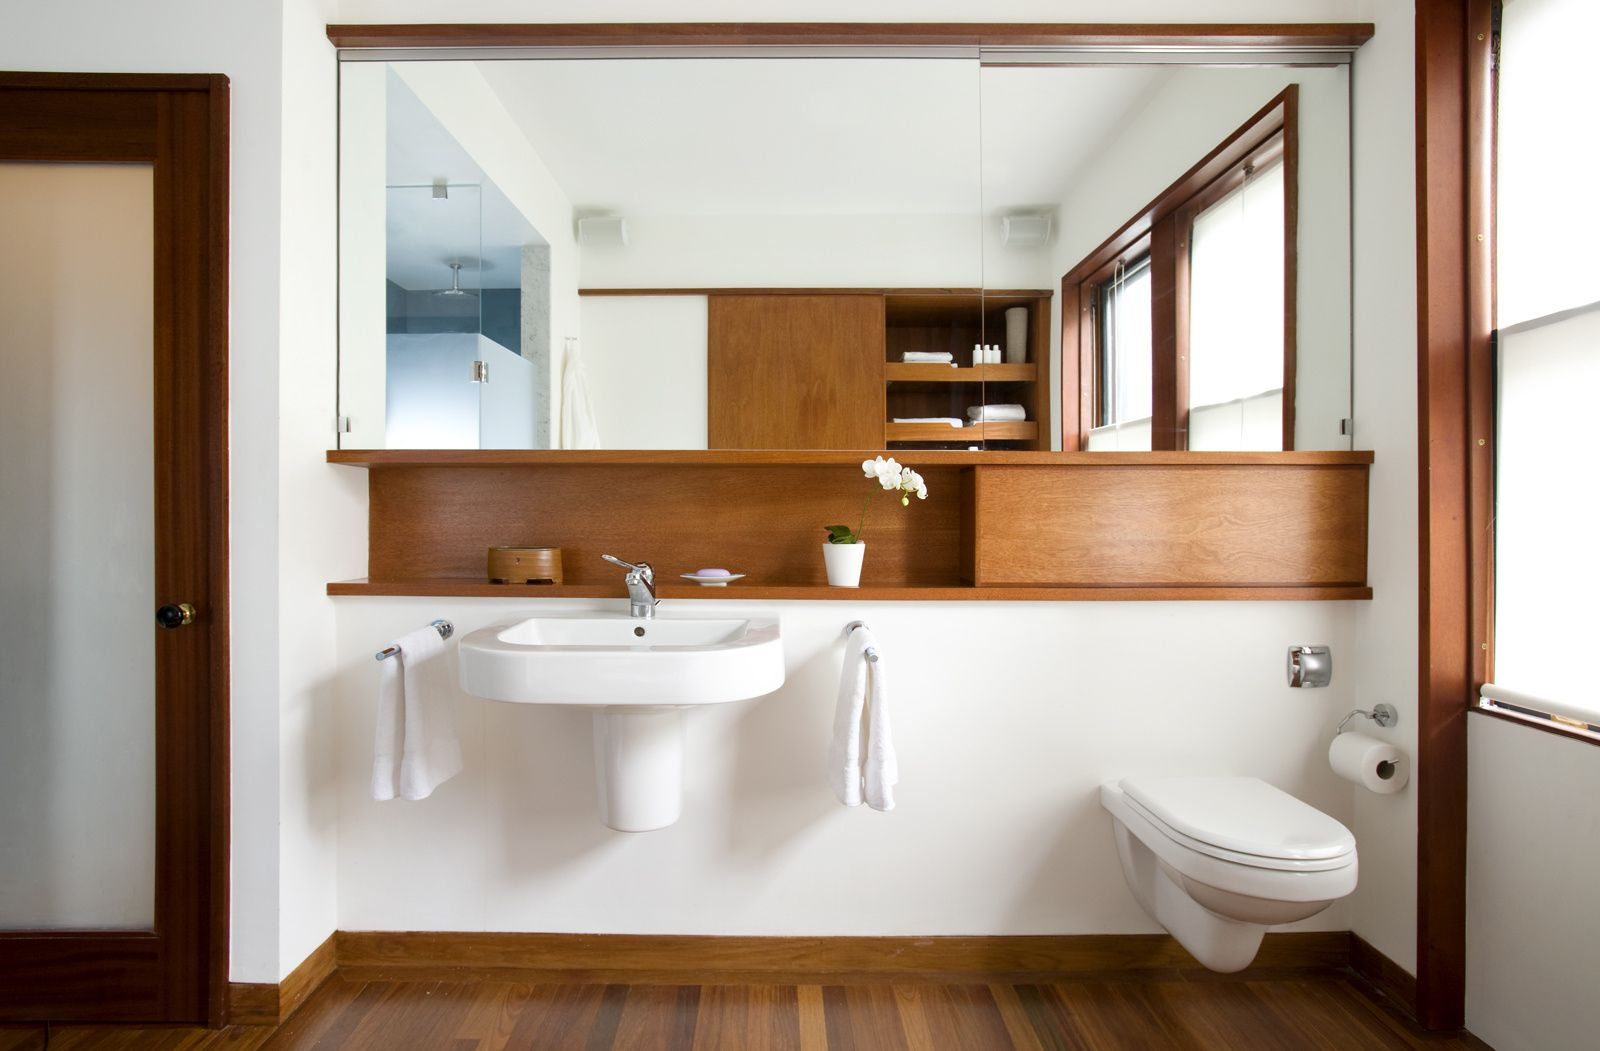 images about easy to clean bathrooms on pinterest toilets concrete walls and modern toilet: dwell bathroom cabinet